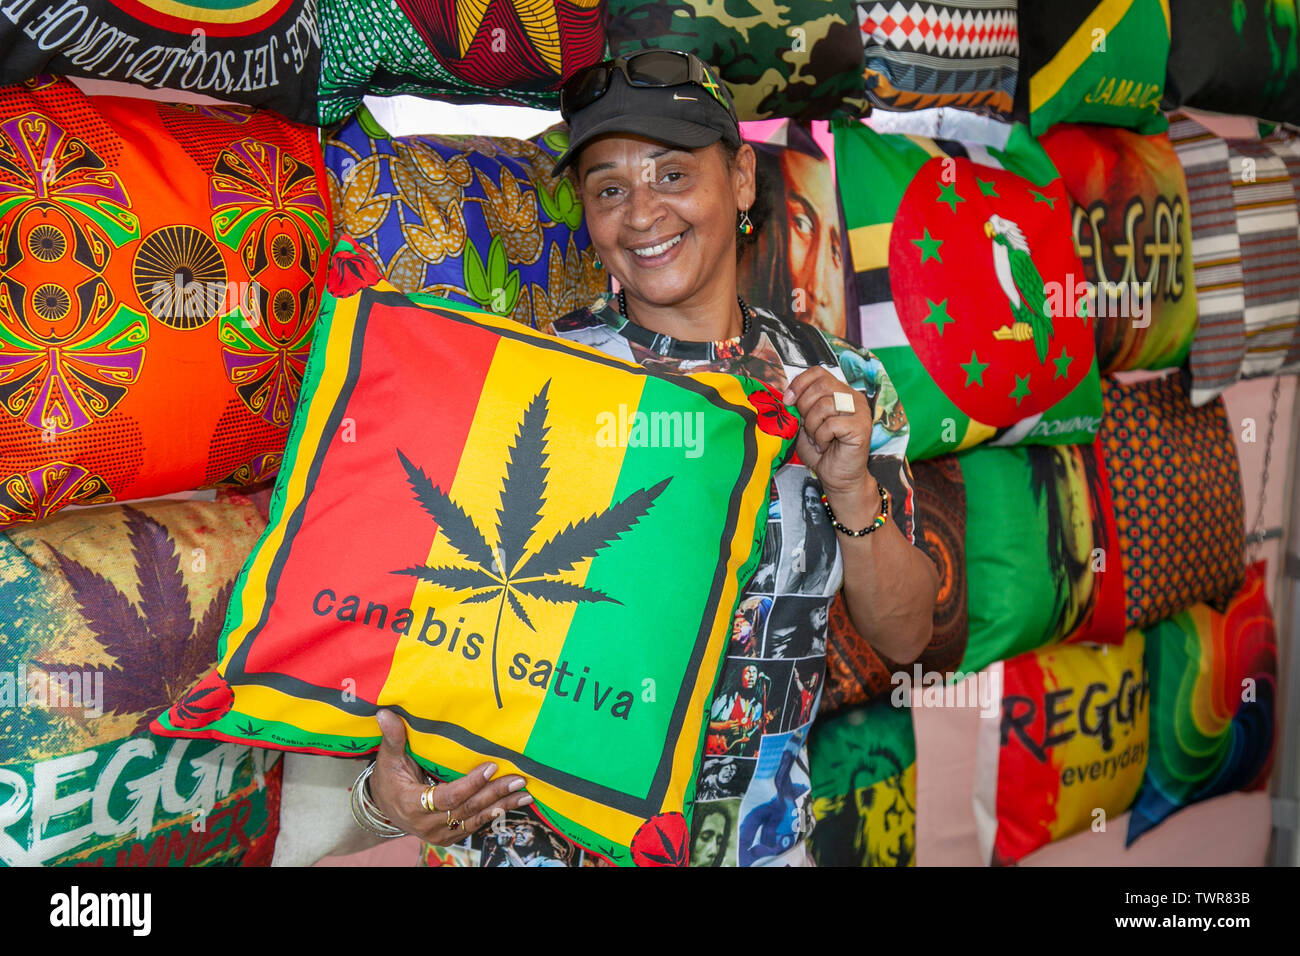 Liverpool, Merseyside, UK. 22nd June 2019. Patricia Hall a cushion trader at the Africa Oye Music Festival.  Music lovers, vendors, attend the fantastic Africa Oyé Festival in Liverpool's Sefton Park. The UK's largest free celebration of African music and culture, goods, traders & merchandise brings out the crowds to enjoy the entertainment as festival-goers bask in the sun. Credit: MWI/Alamy Live News - Stock Image